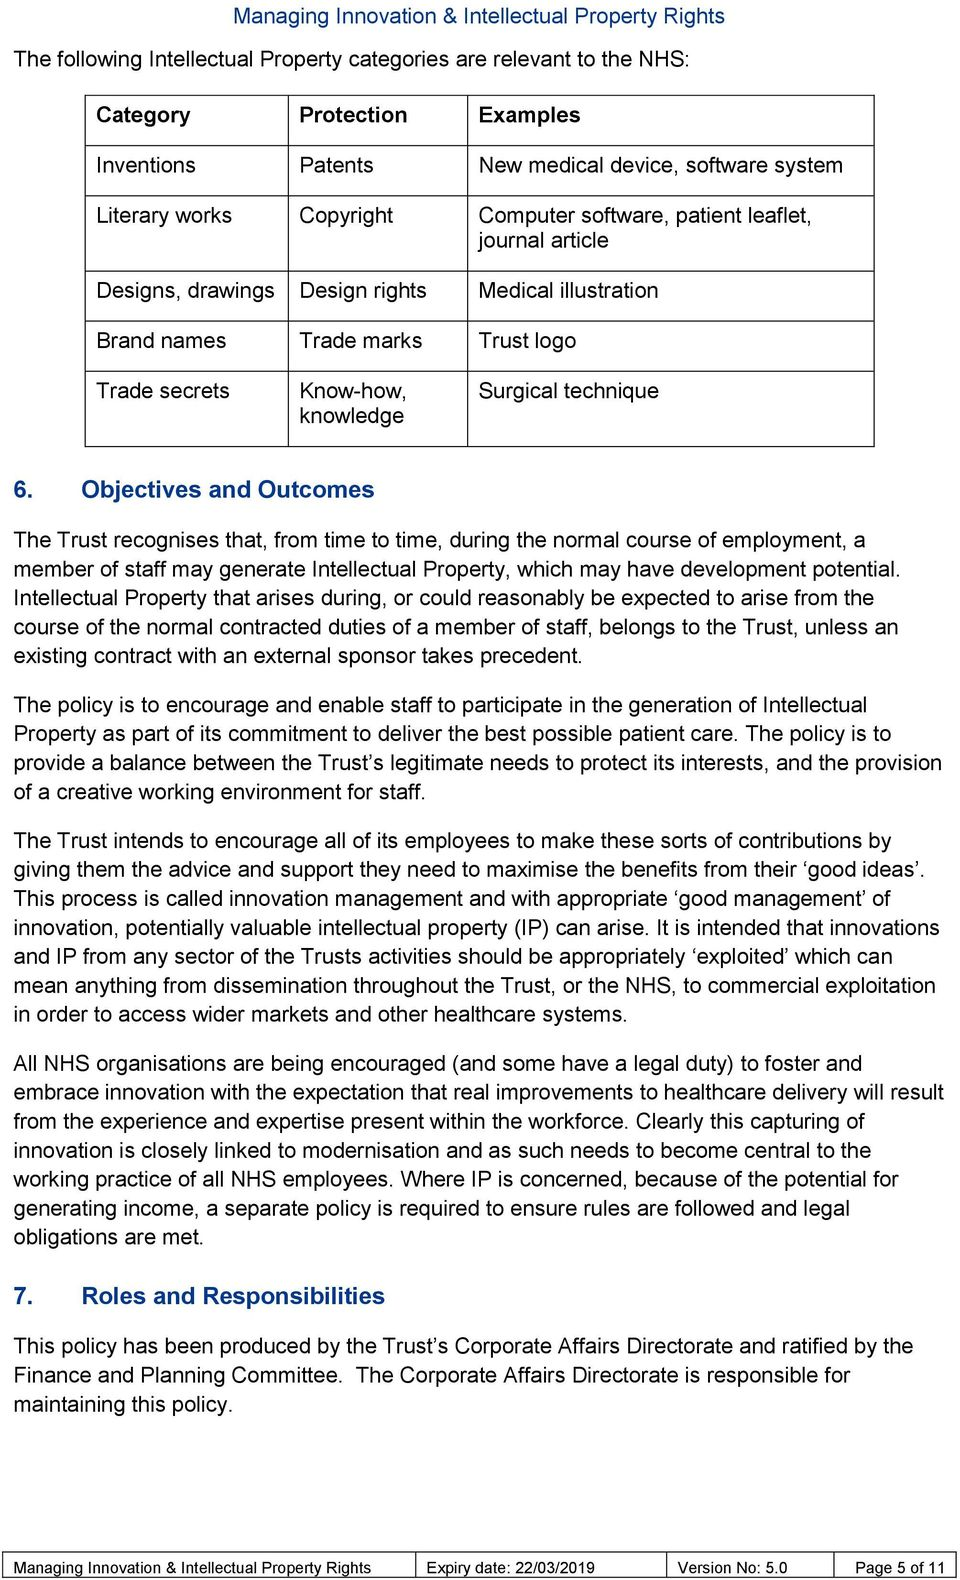 Objectives and Outcomes The Trust recognises that, from time to time, during the normal course of employment, a member of staff may generate Intellectual Property, which may have development